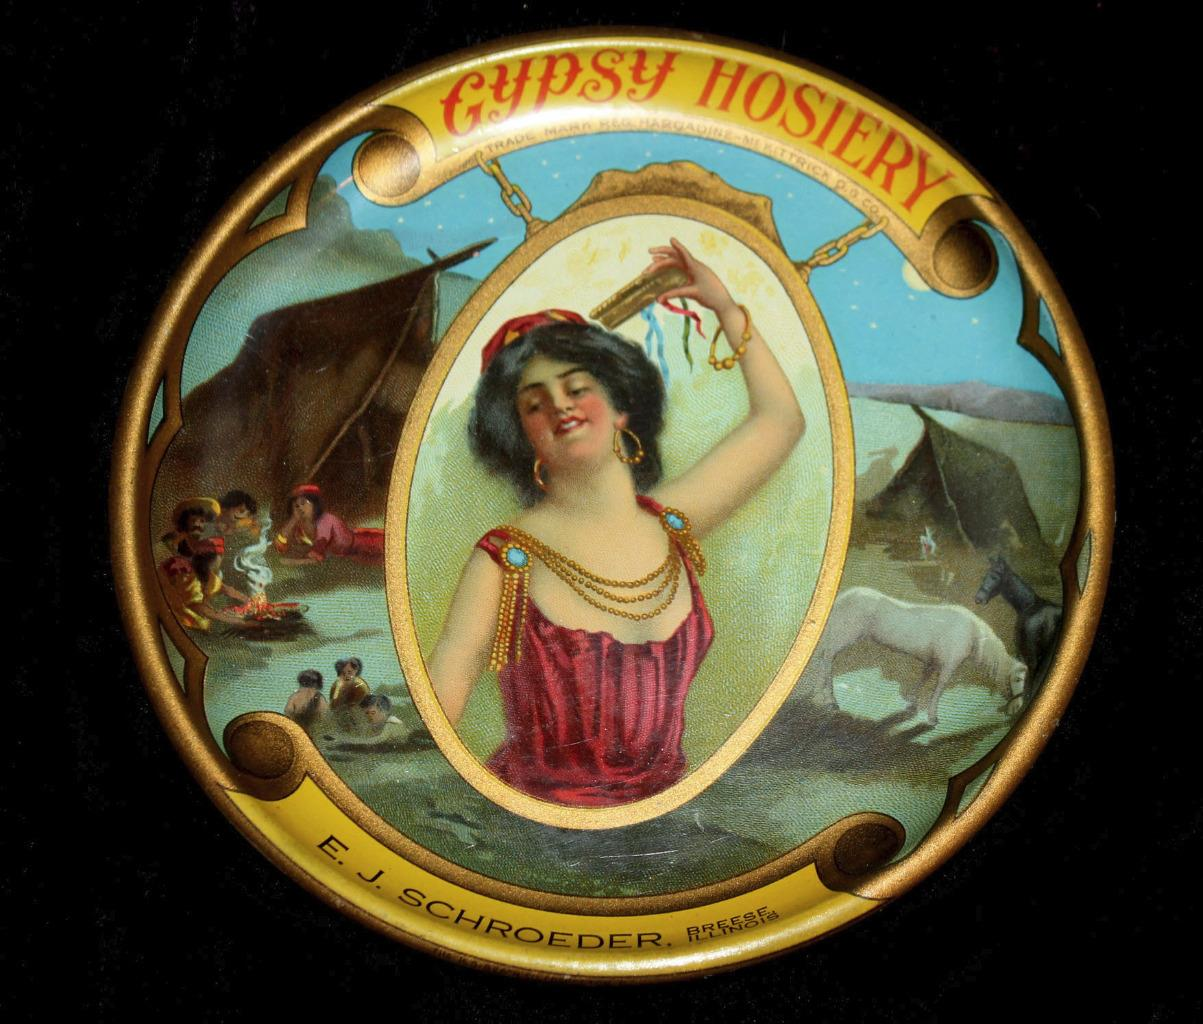 Gypsy Hosiery, Hargadine-McKittrick Dry Goods Store, St. Louis MO Tip Tray, for E J Schroeder Breese, IL